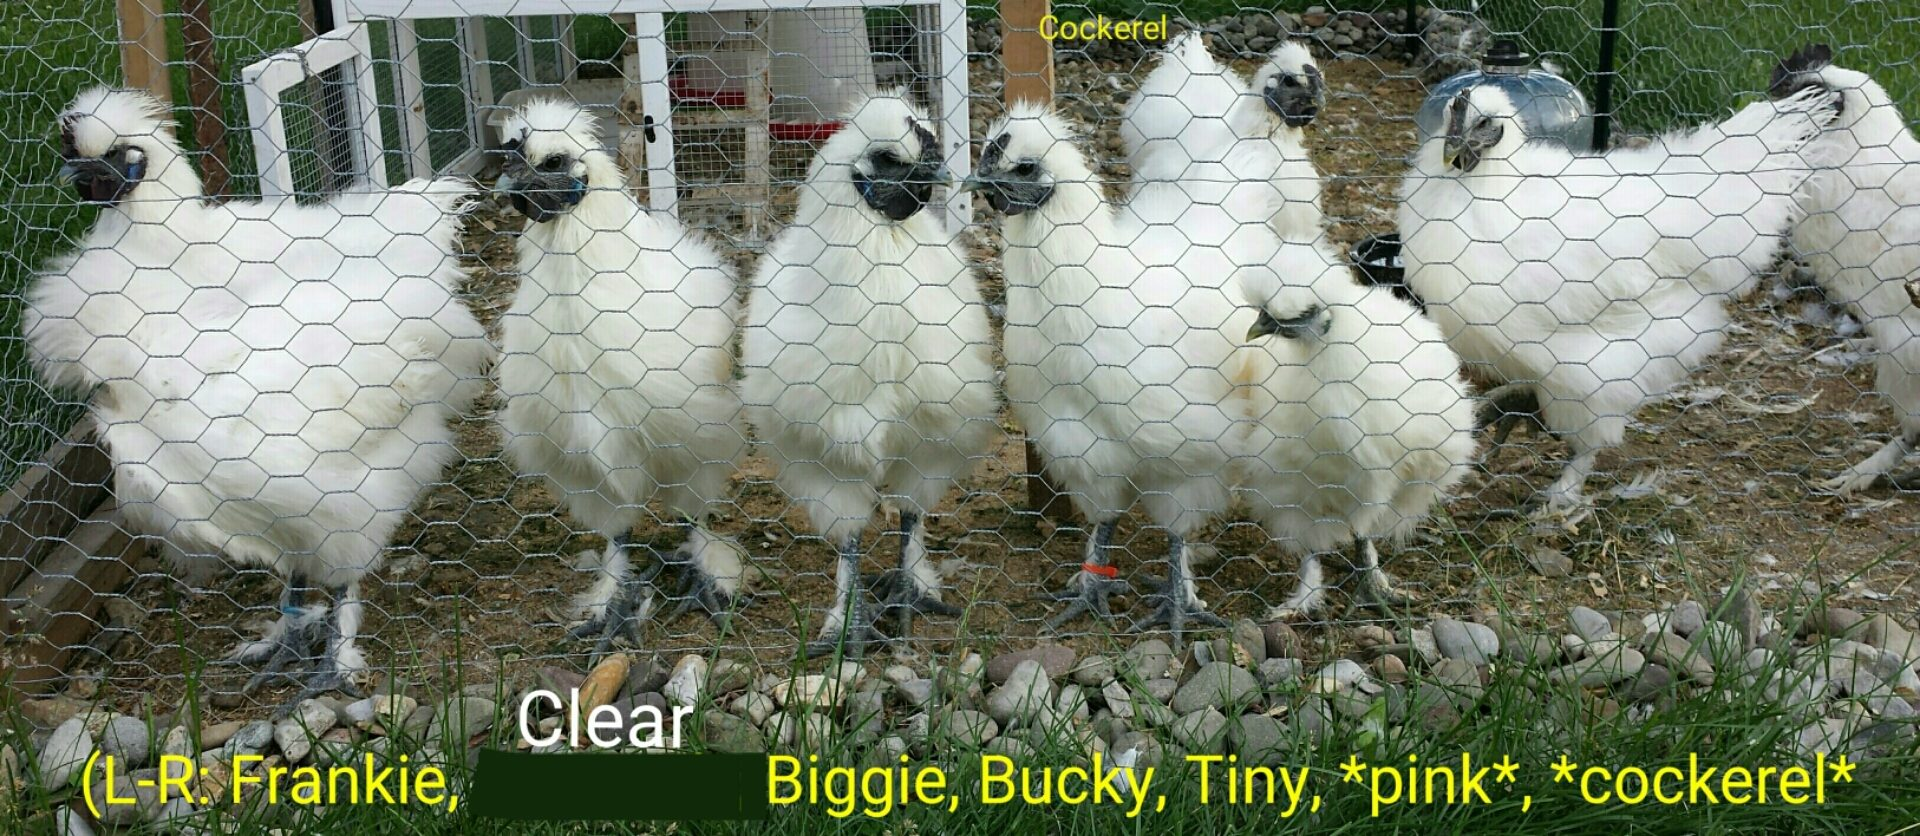 chickachickayea's photos in Lehigh Valley, PA: 2 to possibly 8 13 wk old White Silkie Cockerels in need of a new home